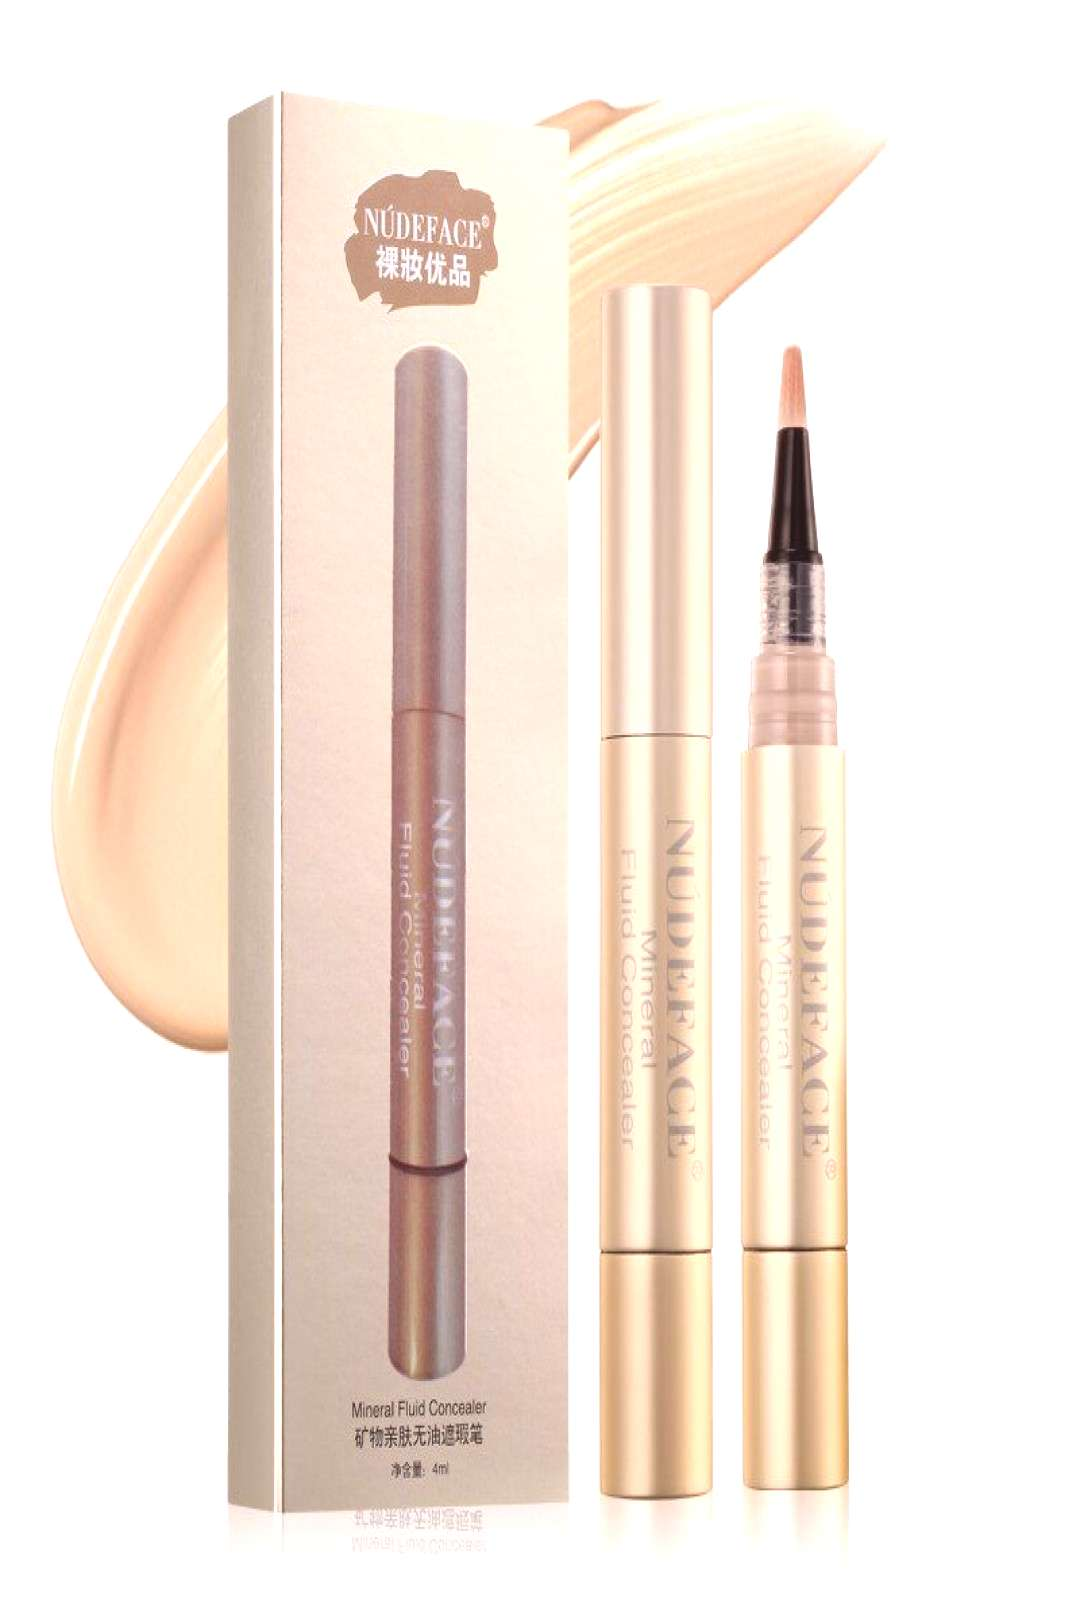 Professional Makeup Contouring Face Concealer Makeup Cosmetics Pencil White Foundation Skin Smooth